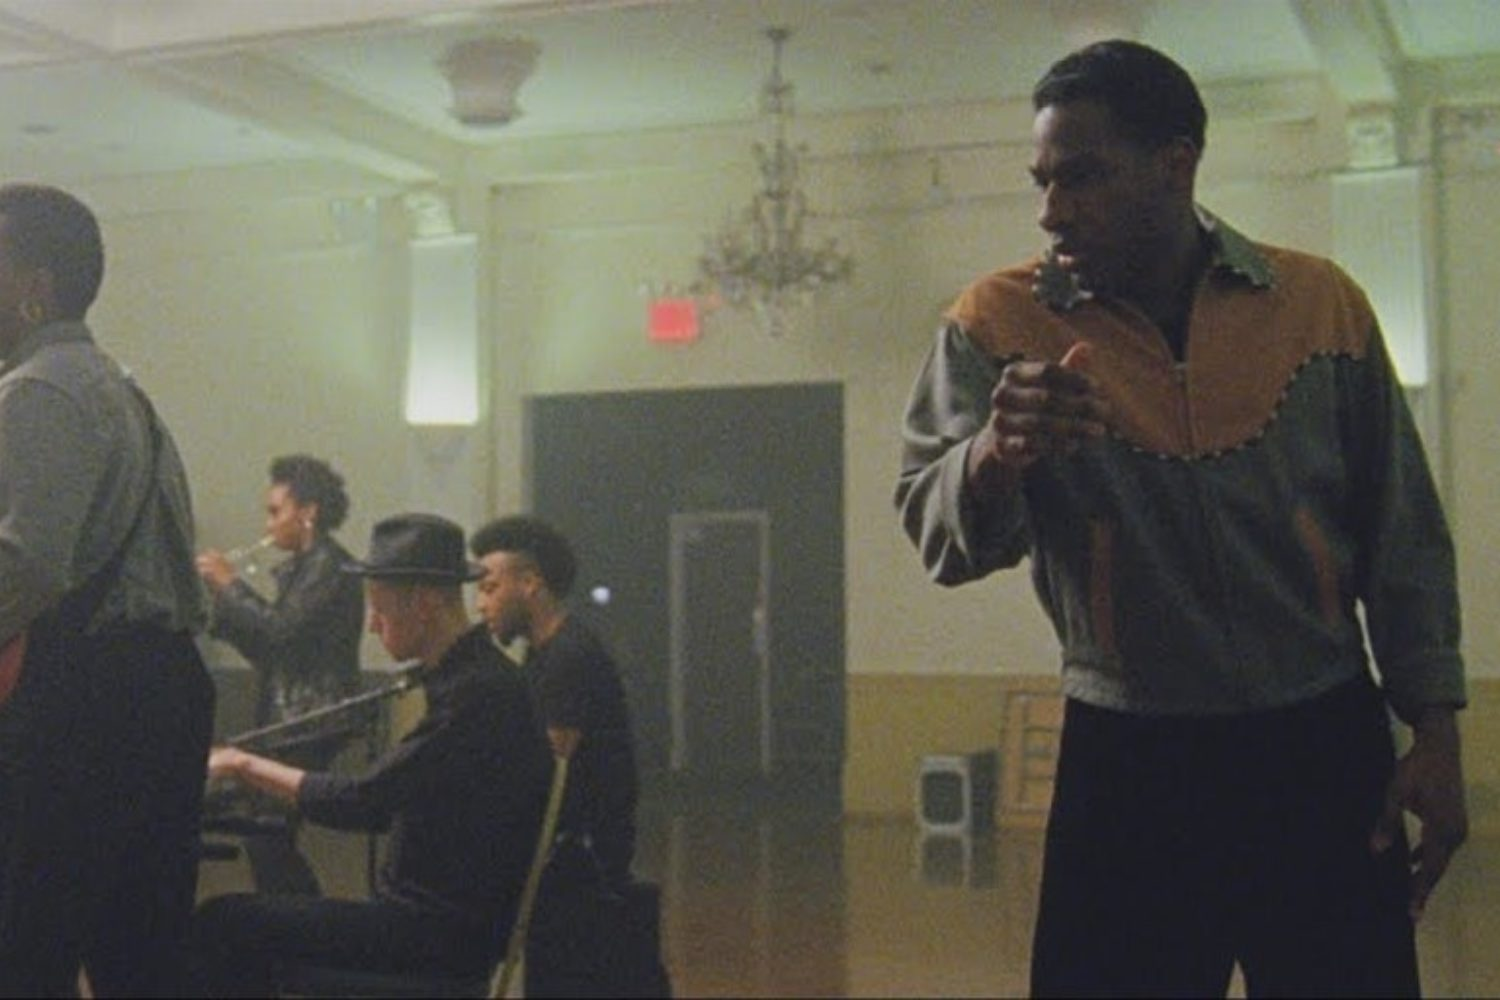 Leon Bridges gets dancing in the video for 'Bad Bad News'